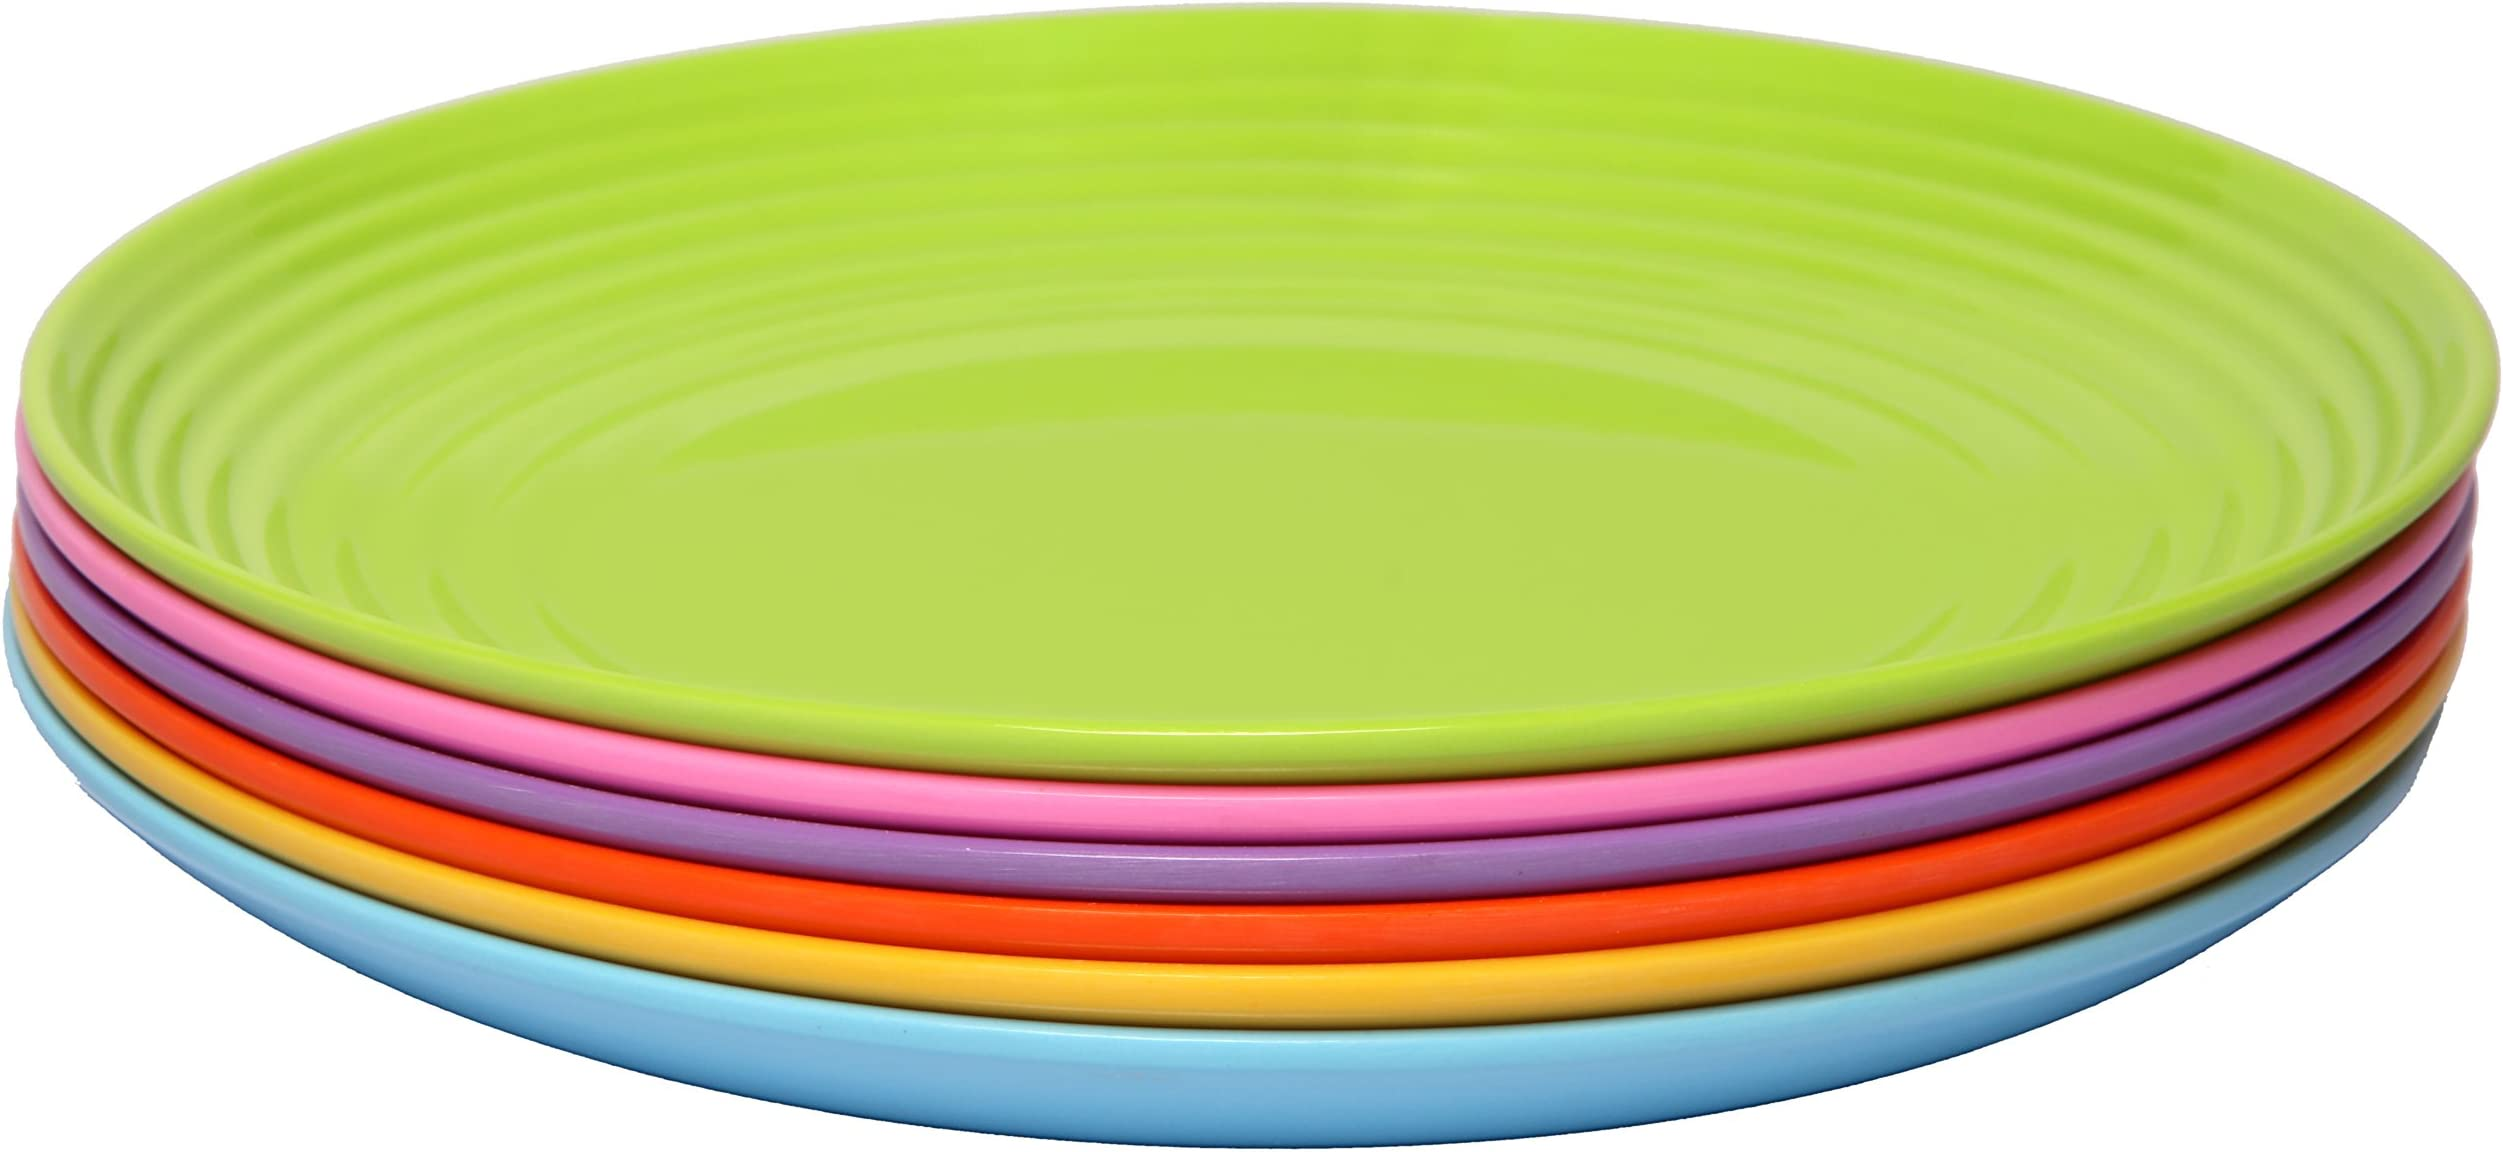 Dinner Plates  sc 1 st  Amazon.com : most durable dinner plates - pezcame.com